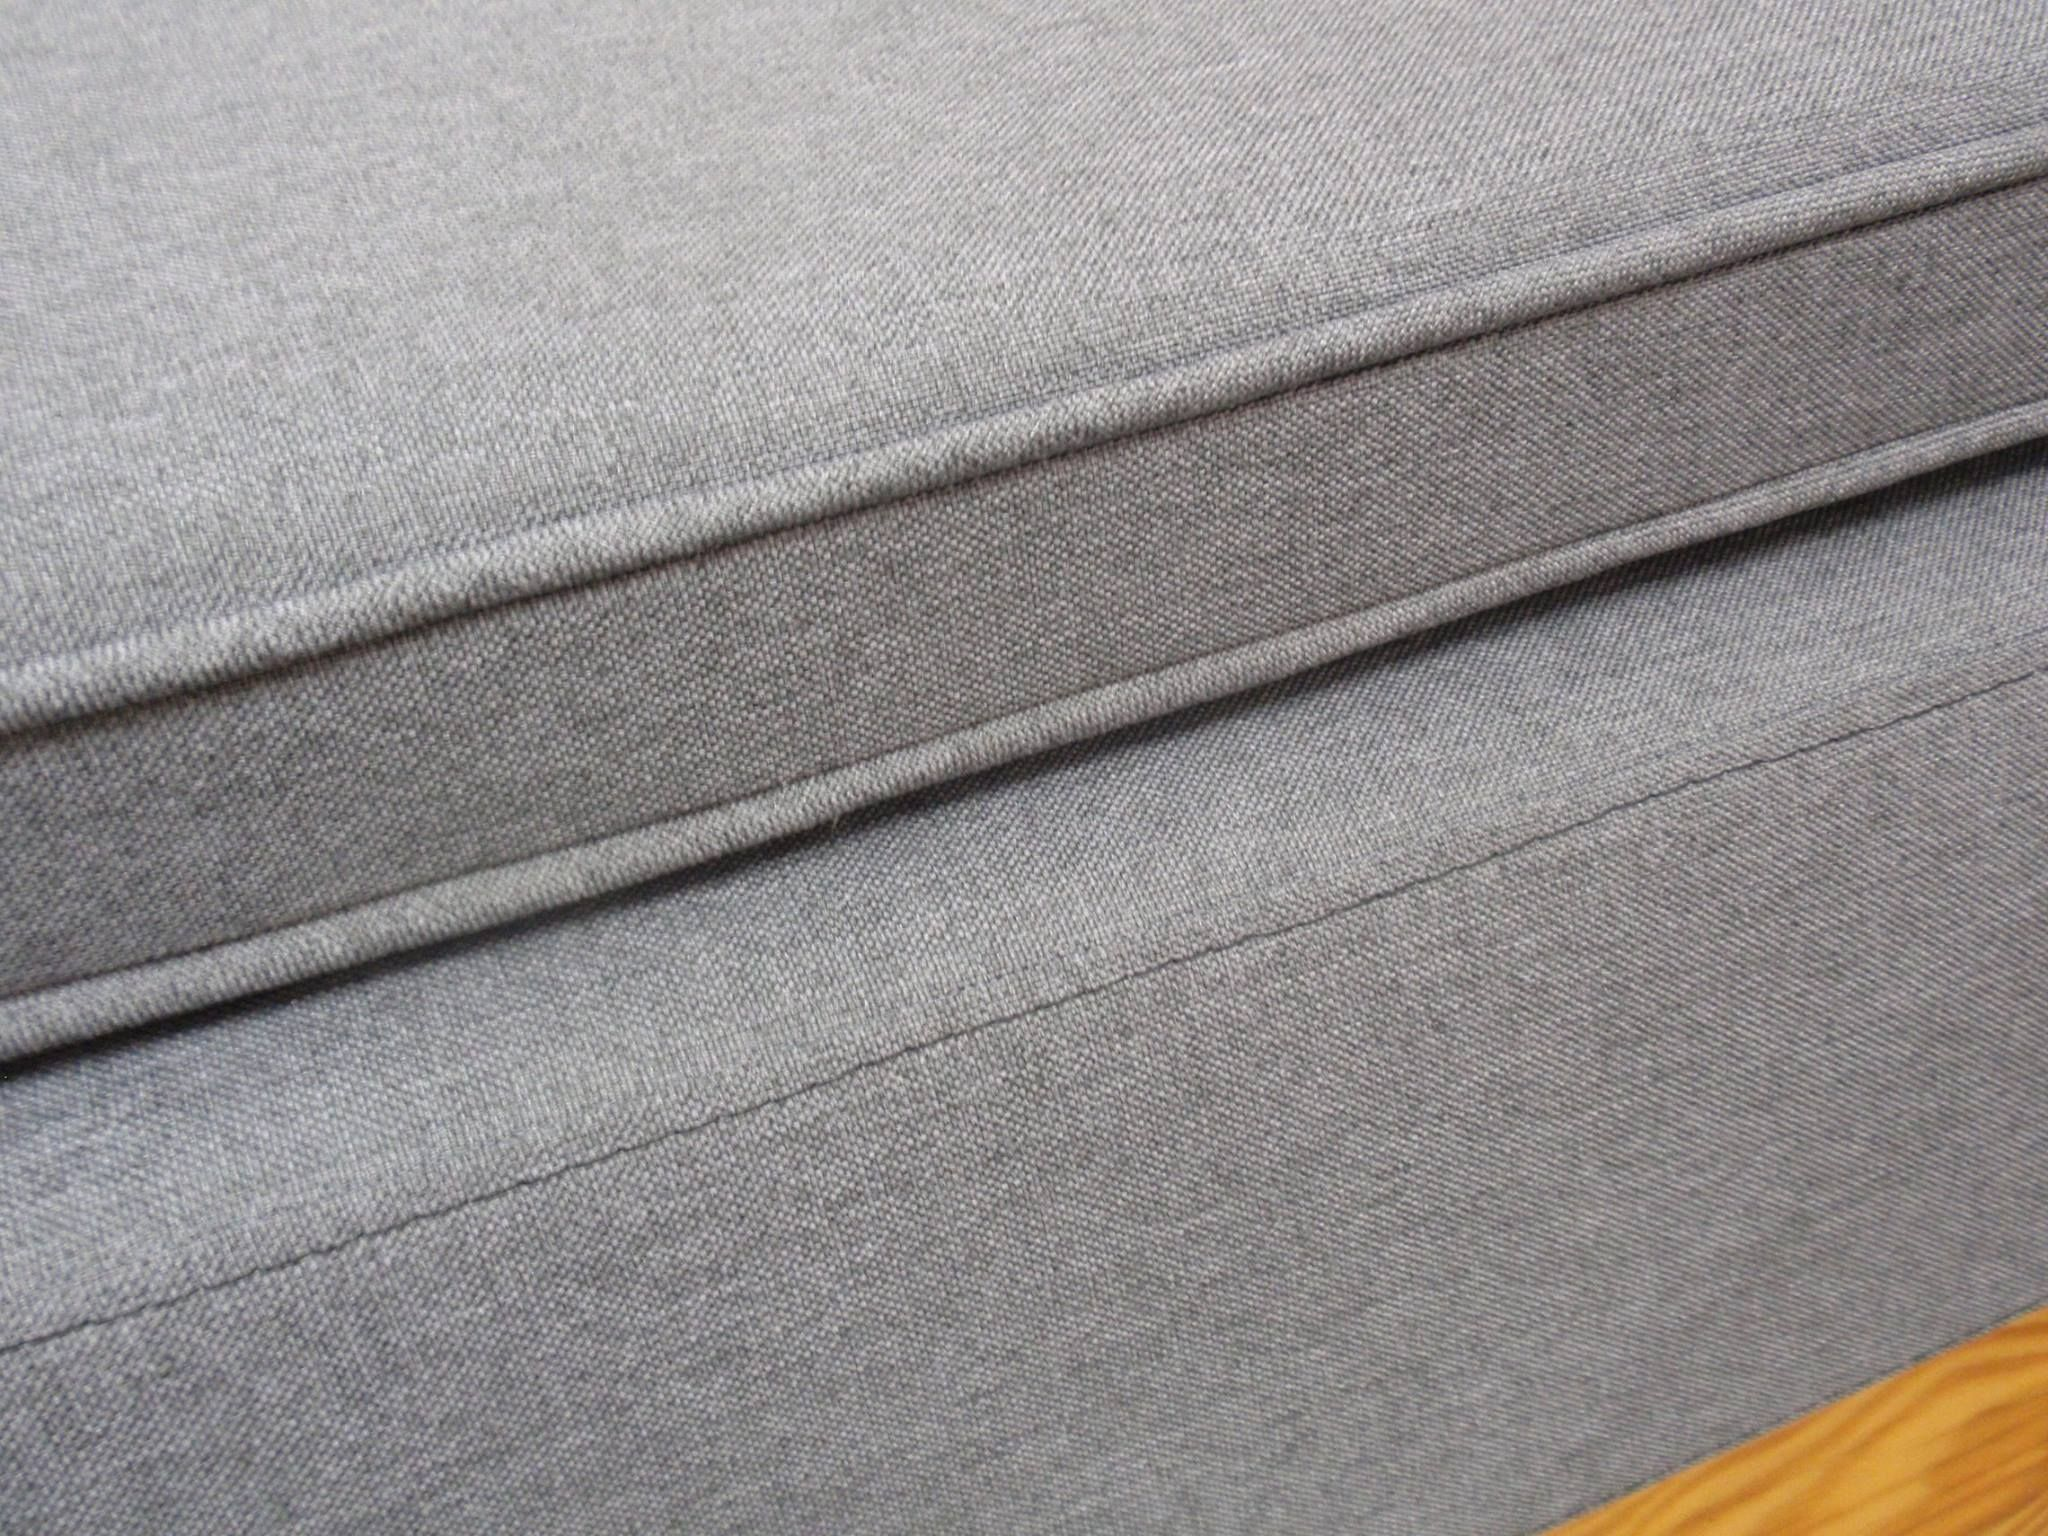 cushions with and without piping ideal for garden furniture outdoor cushions and outdoor benches